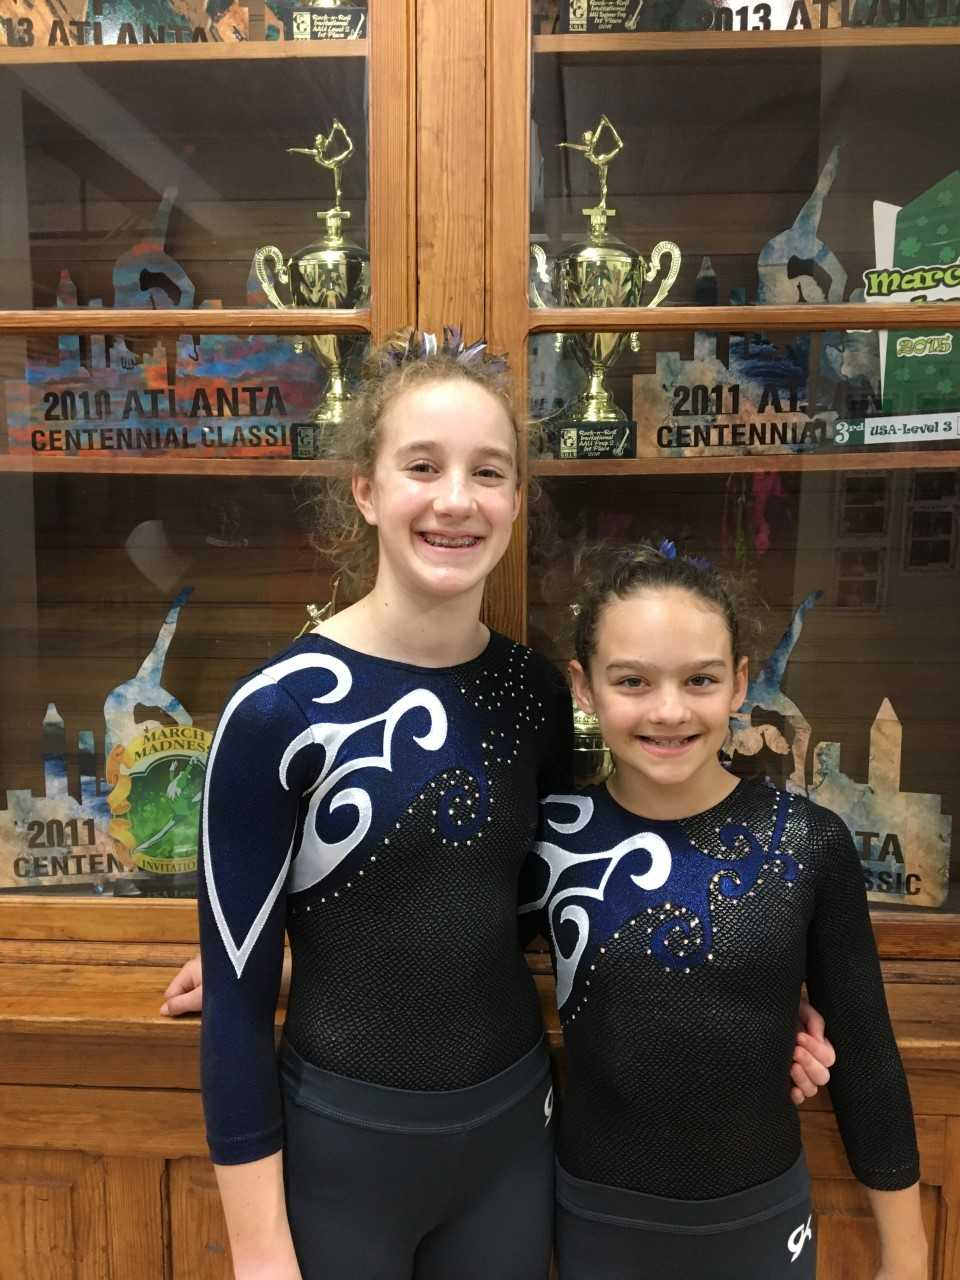 Rome Aerials Qualifies 2 For Regional Championships